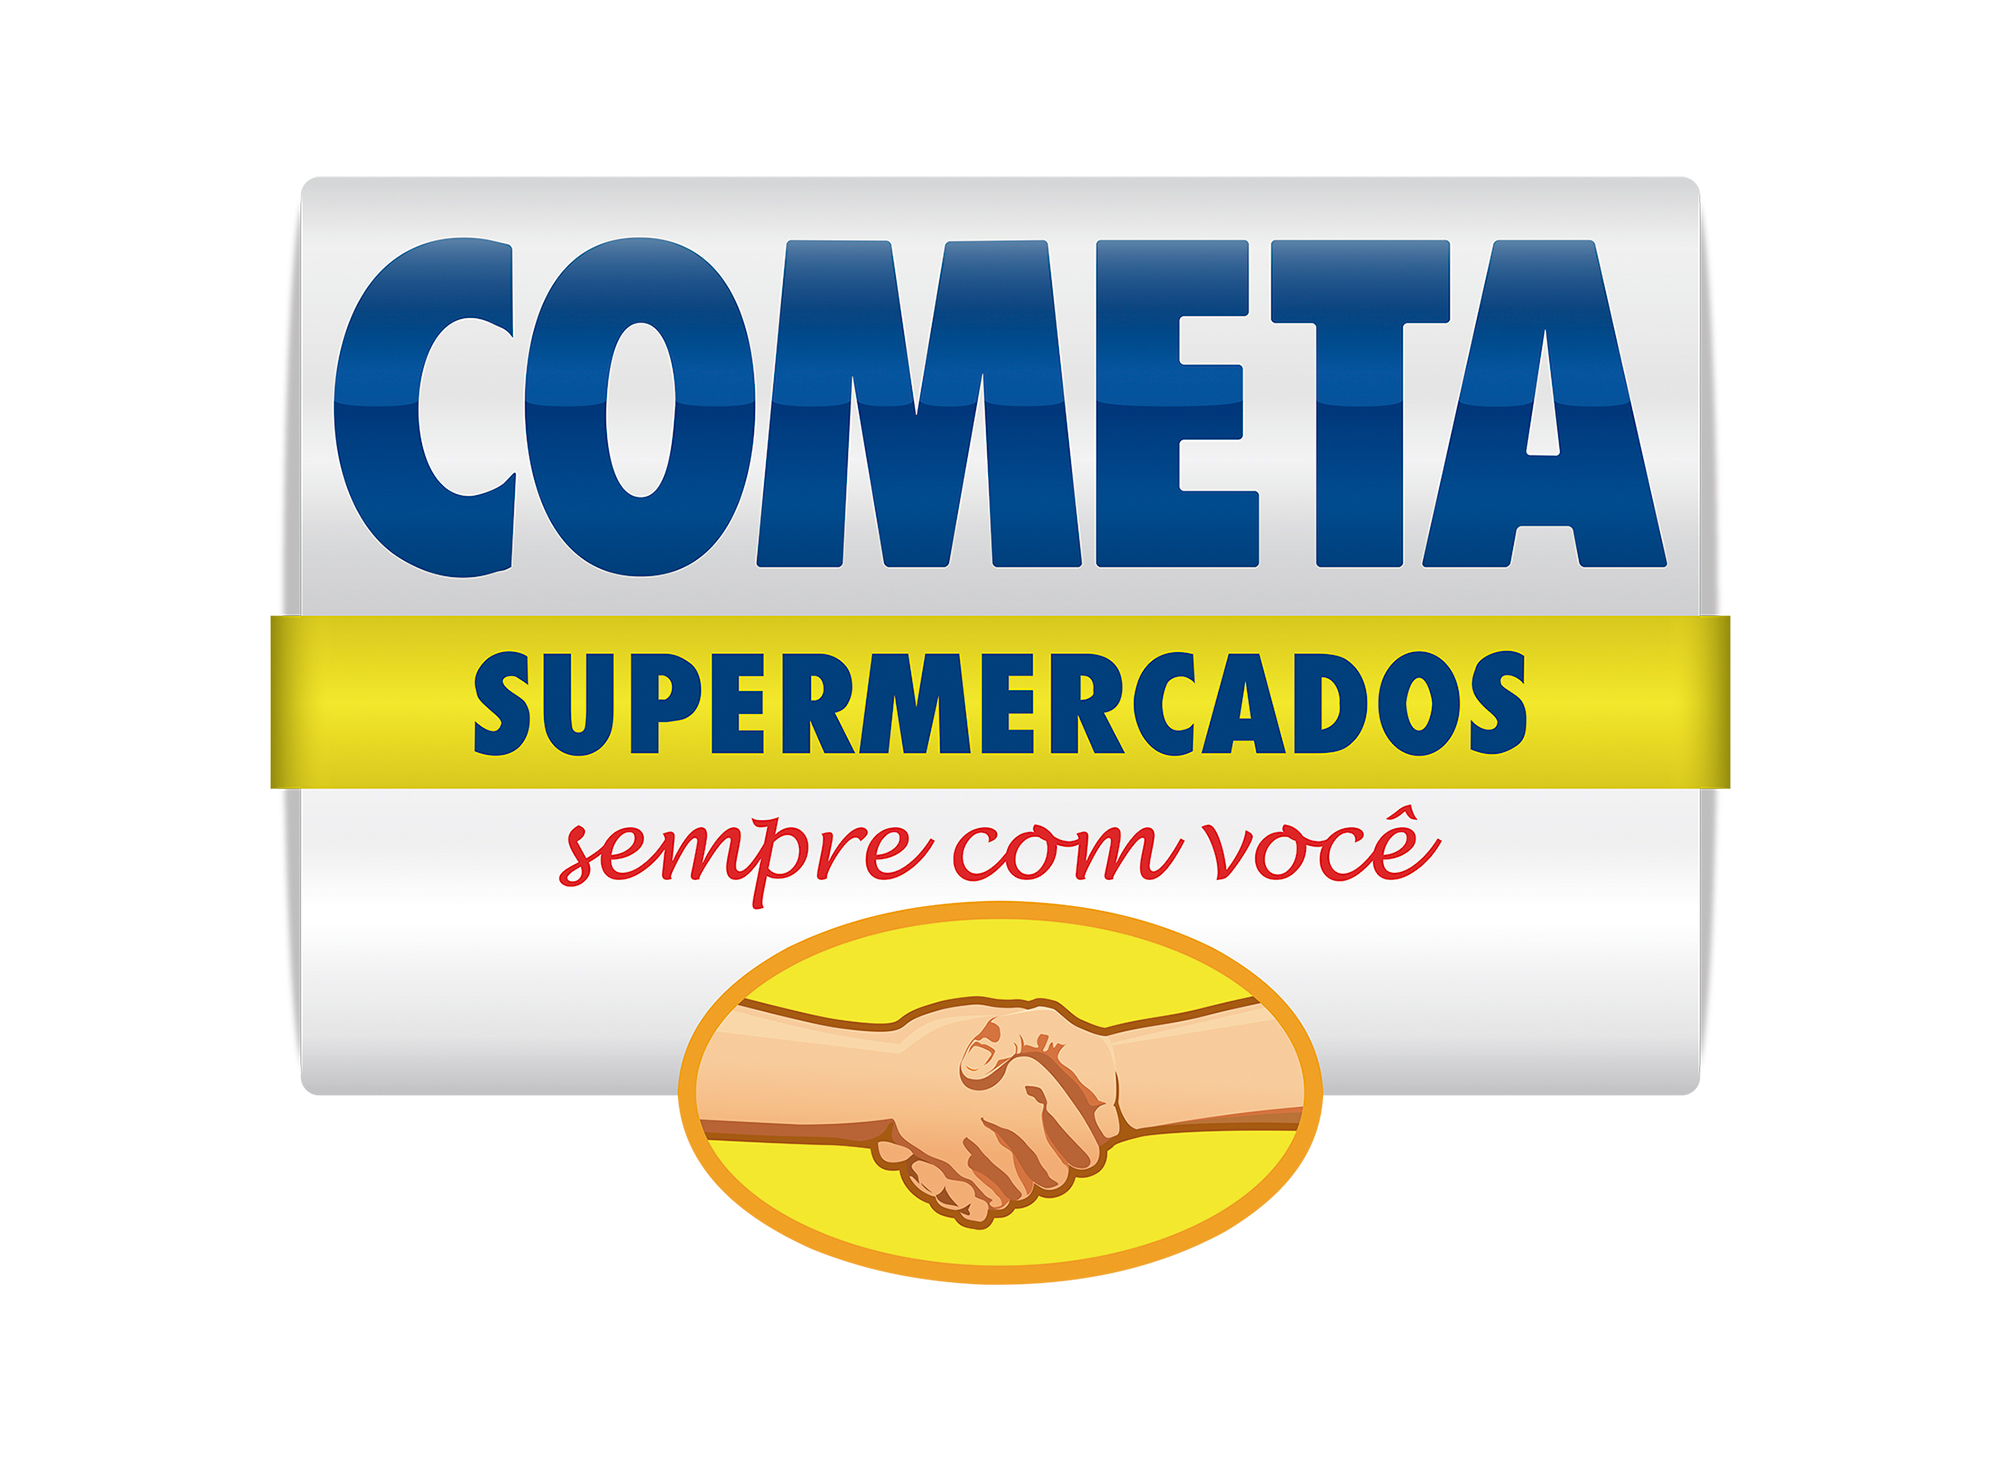 cometa-supermercados-clientes-portfolio-agencia-diretriz-digital-marketing-fortaleza